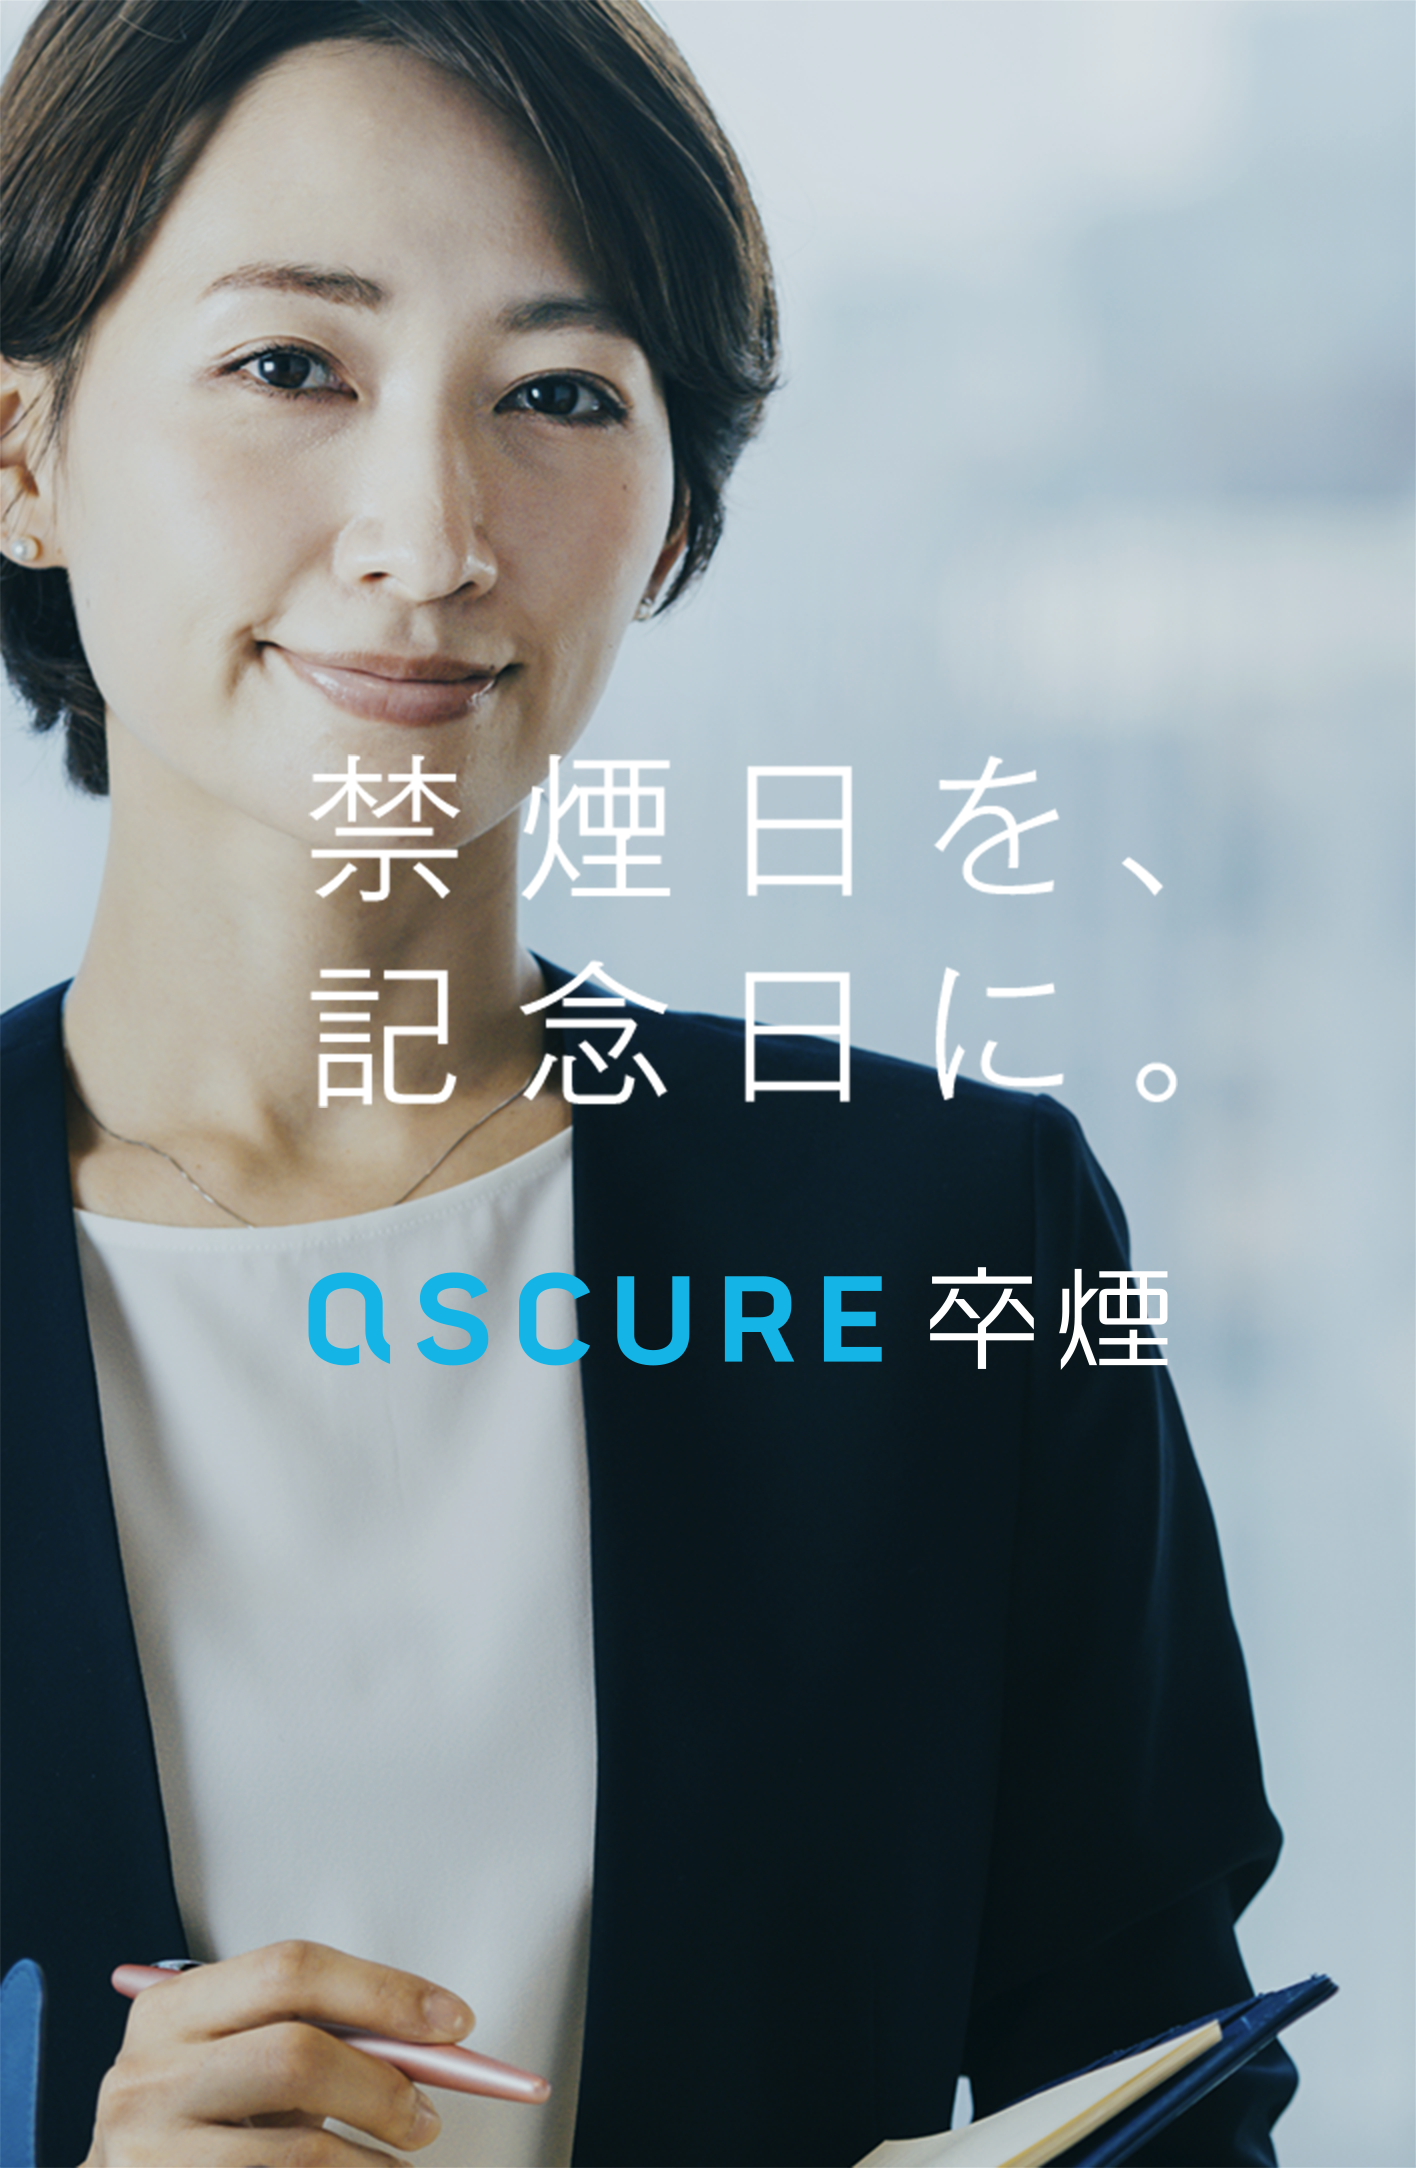 ascure 卒煙